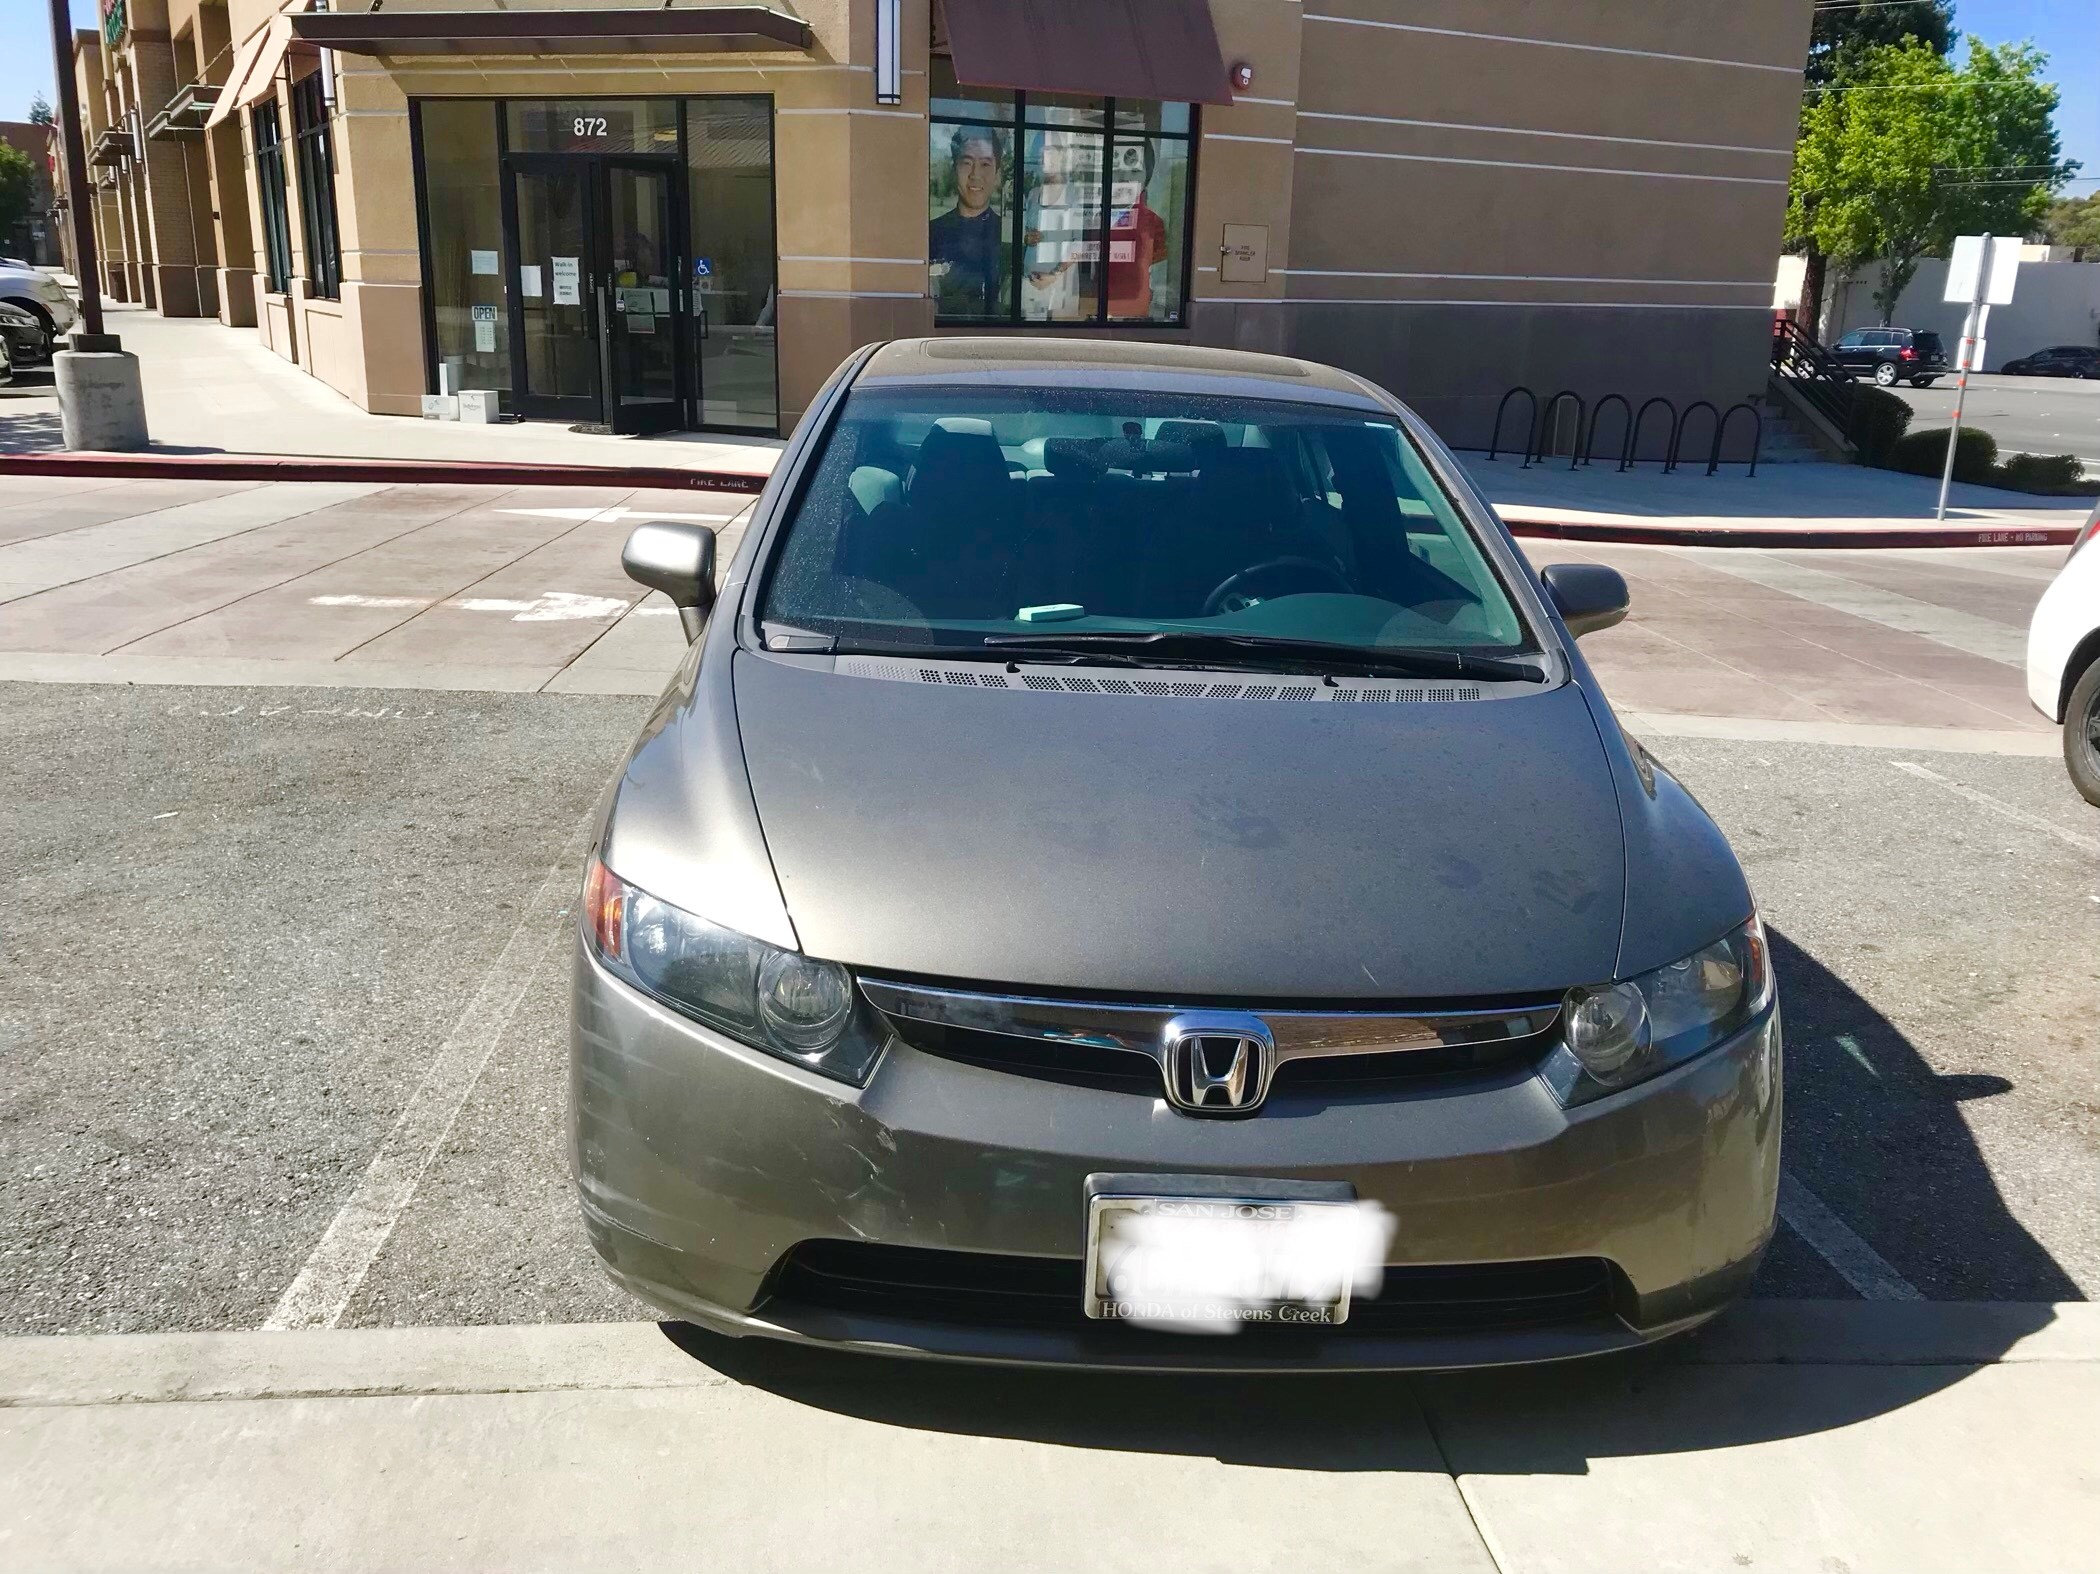 2008 Honda Civic EX Single Owner Pristine Condition Low Milage